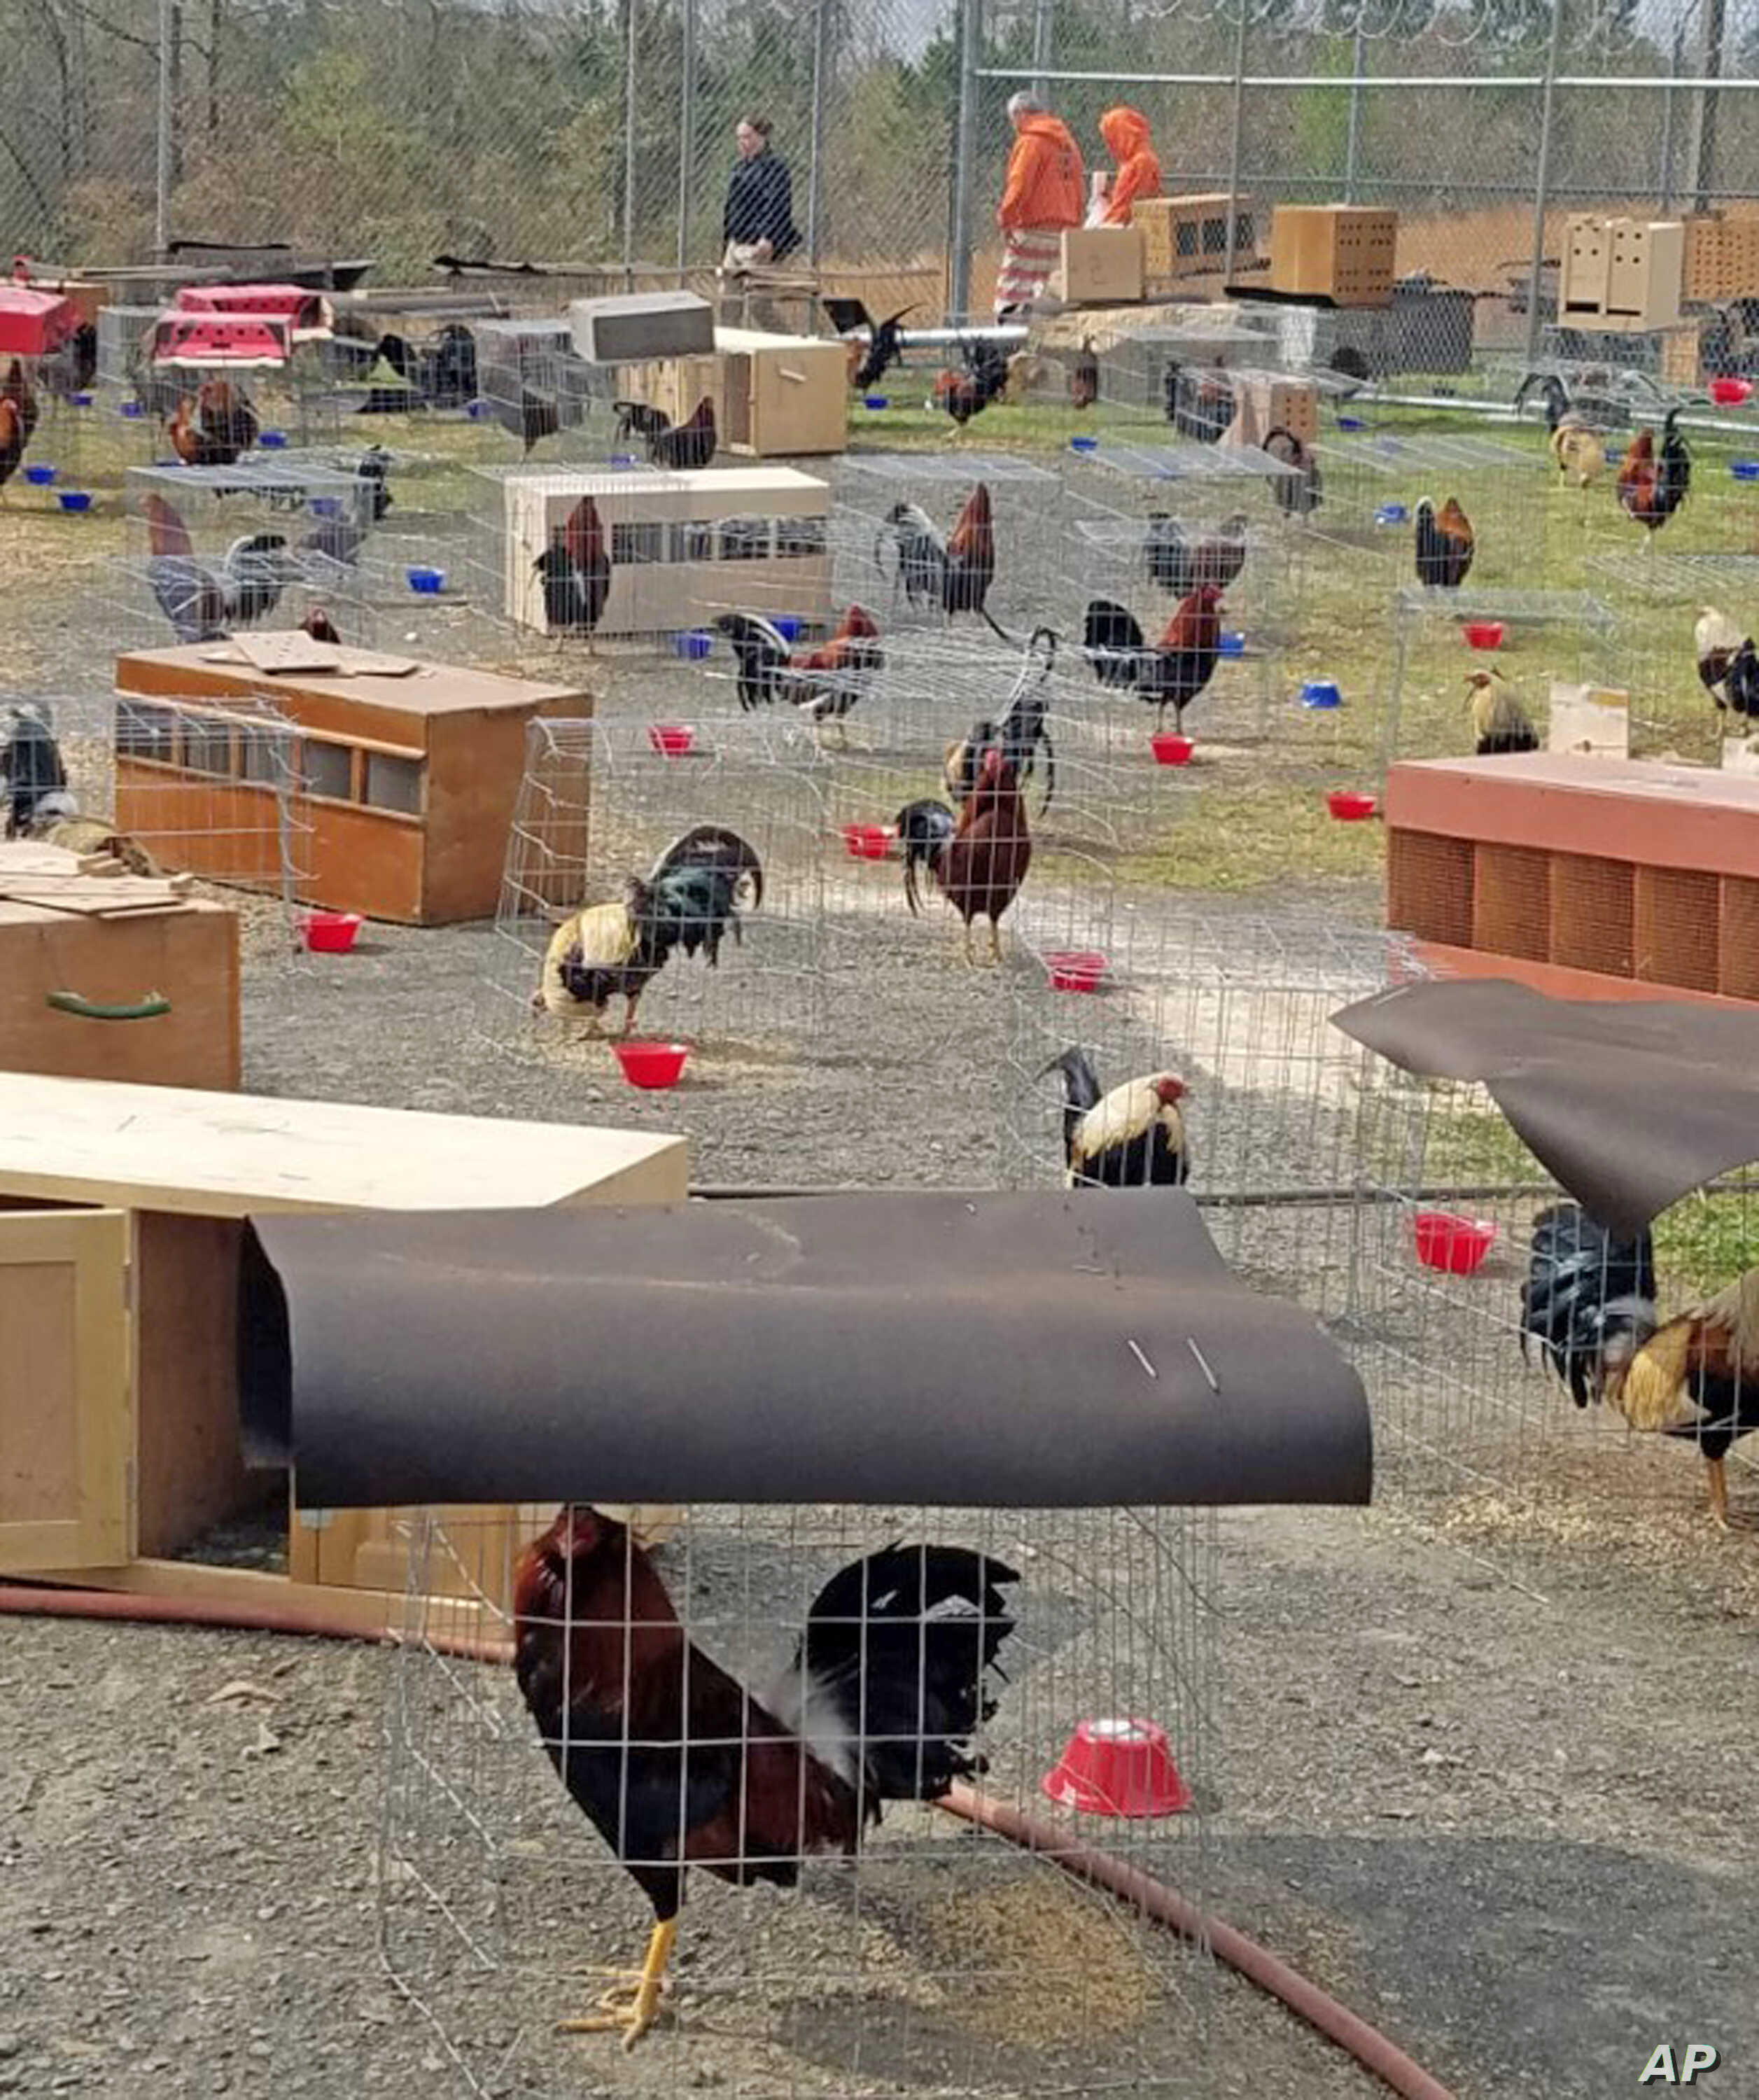 This March 23, 2018 photo provided by the Sevier County Sheriff's Office in De Queen, Arkansas, shows some of the 200 roosters seized during a raid at a cockfight, March 17, 2018.